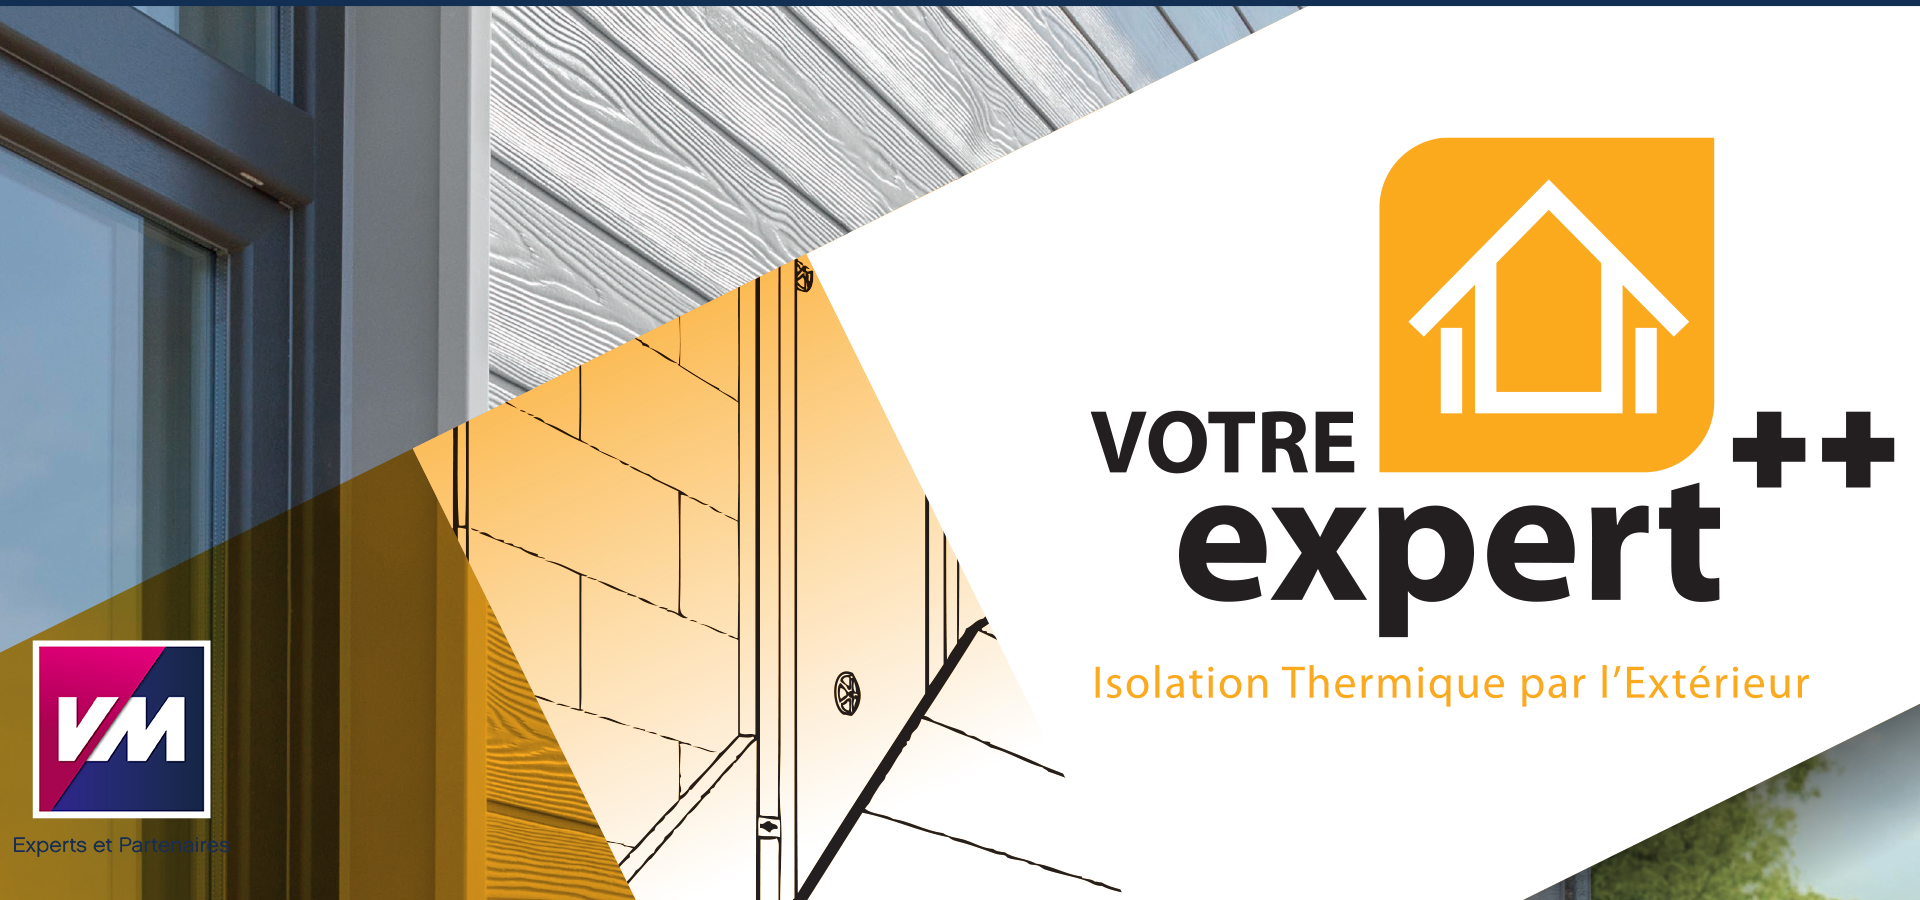 VM-expert-ppi-negoce-materiaux-groupe-herige-realisation-comwell